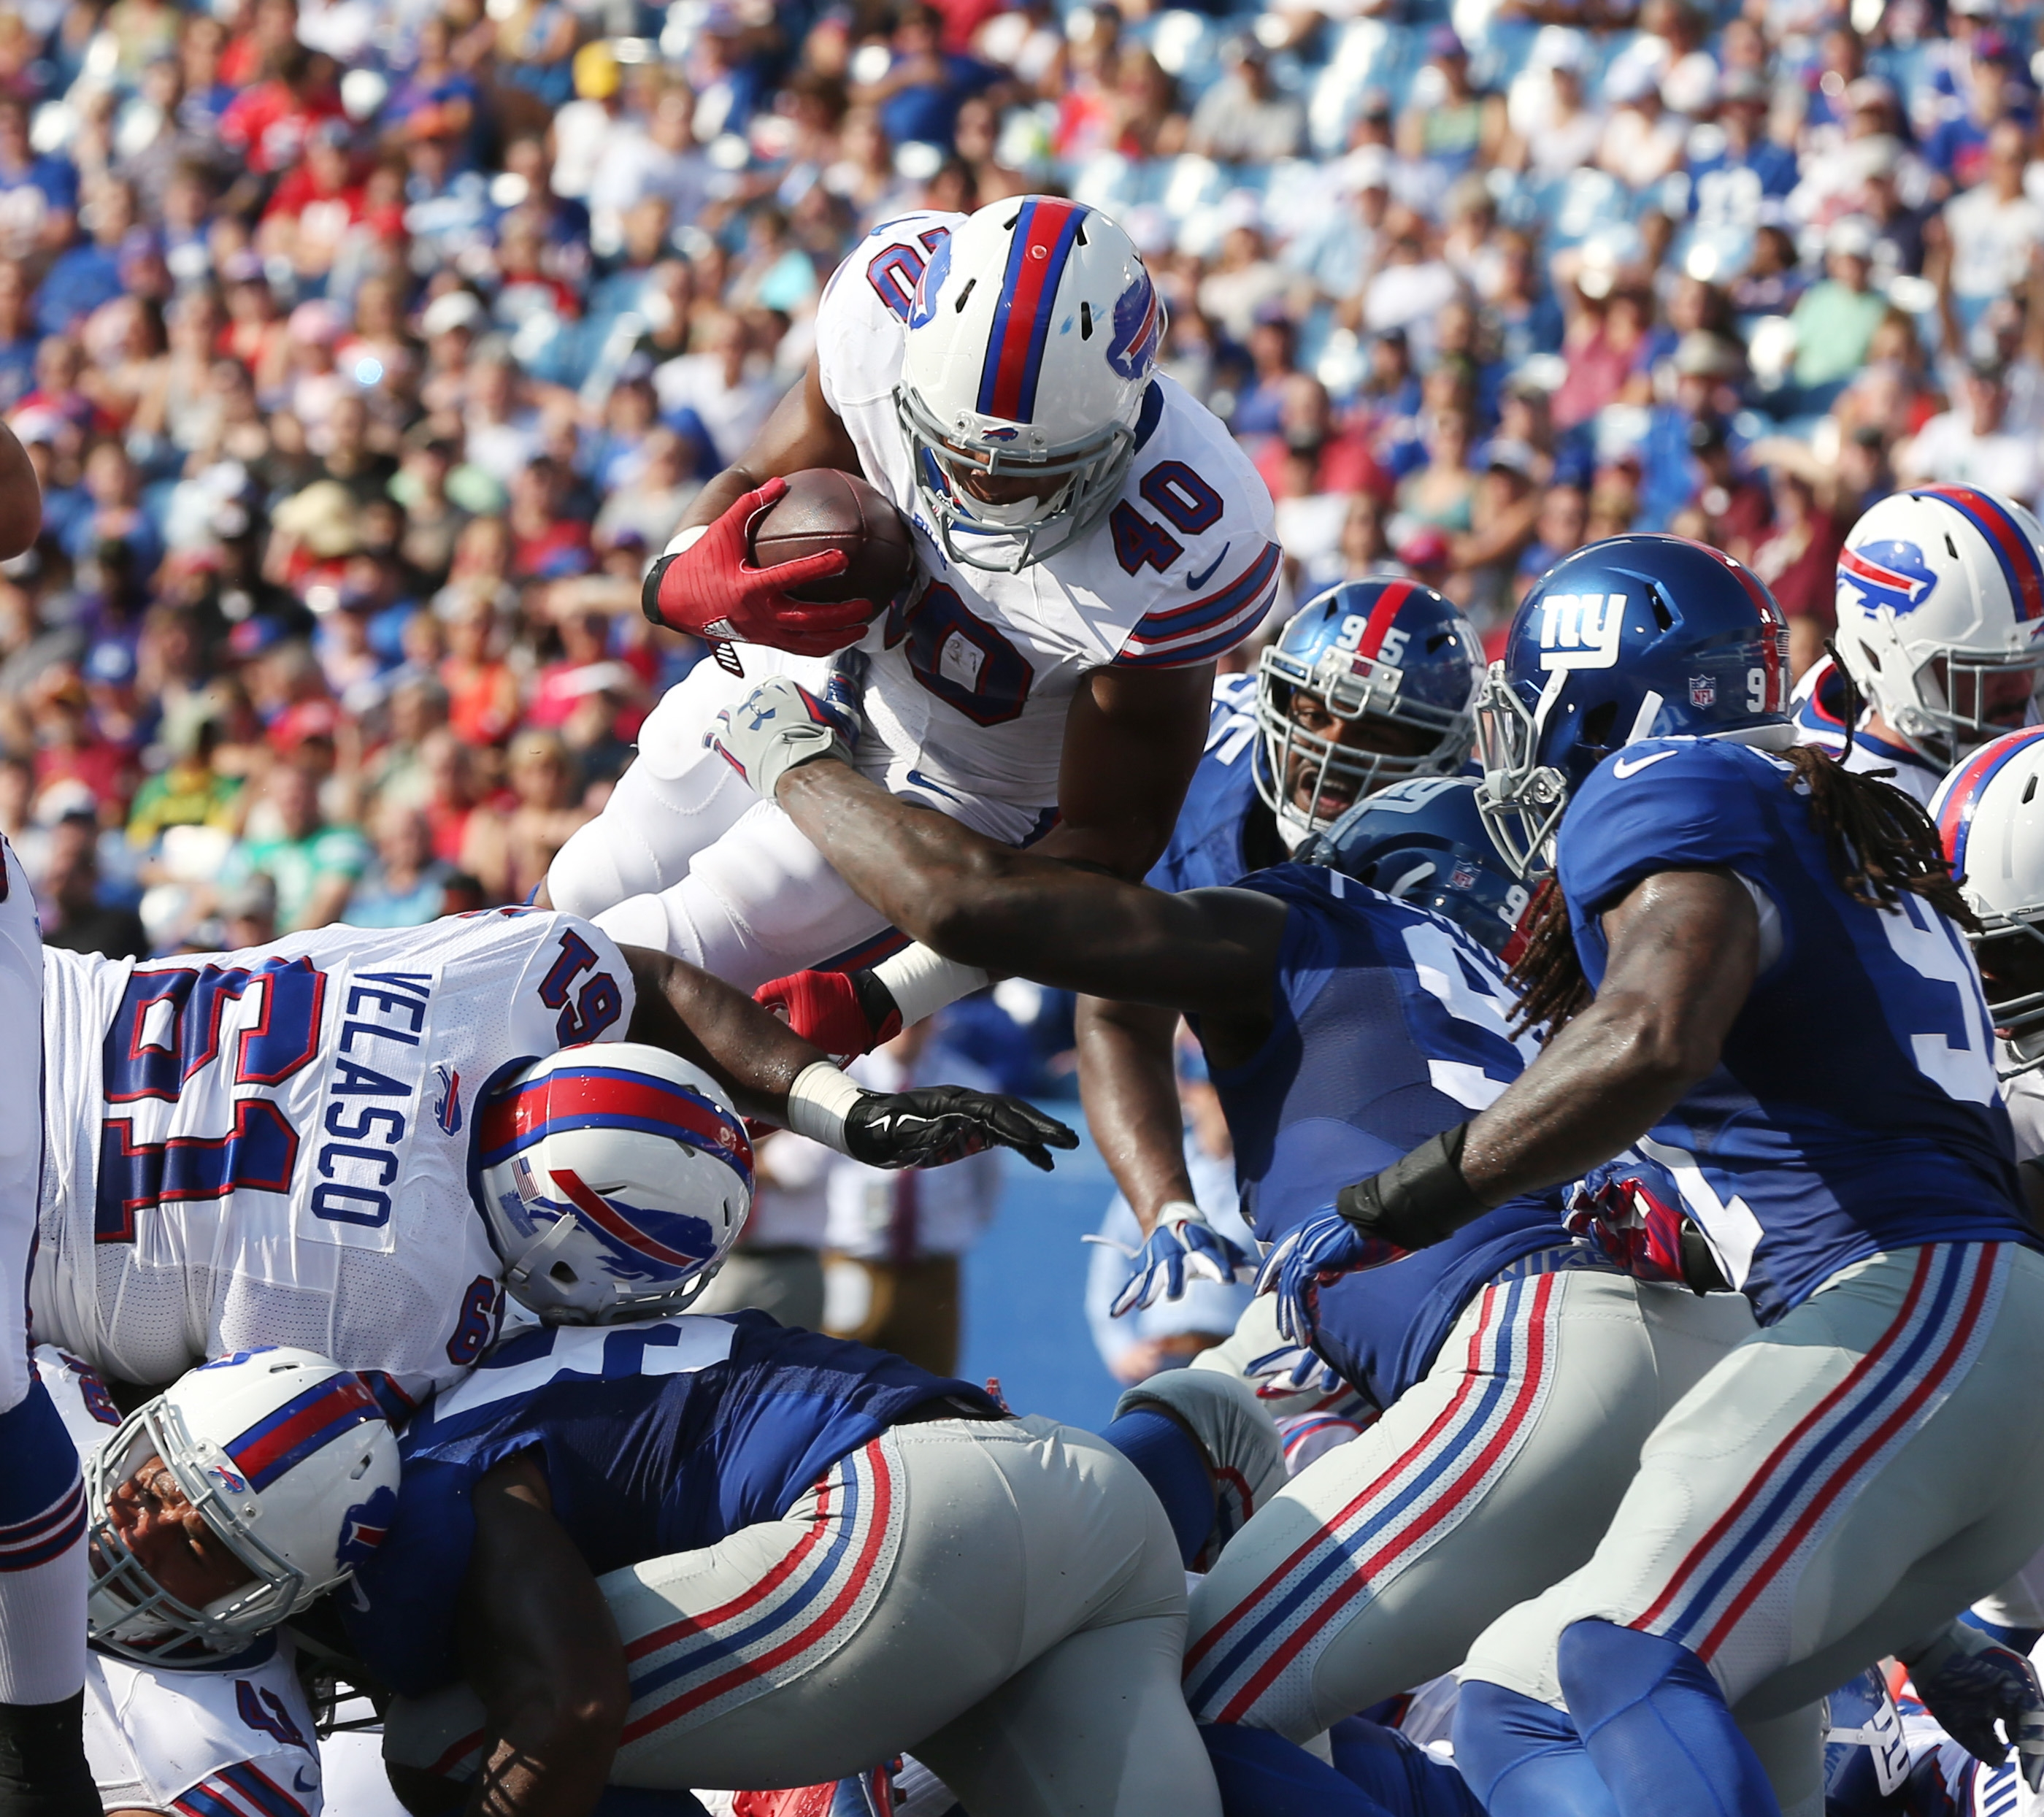 Bills notebook: Karlos Williams' career in Buffalo comes to an abrupt end